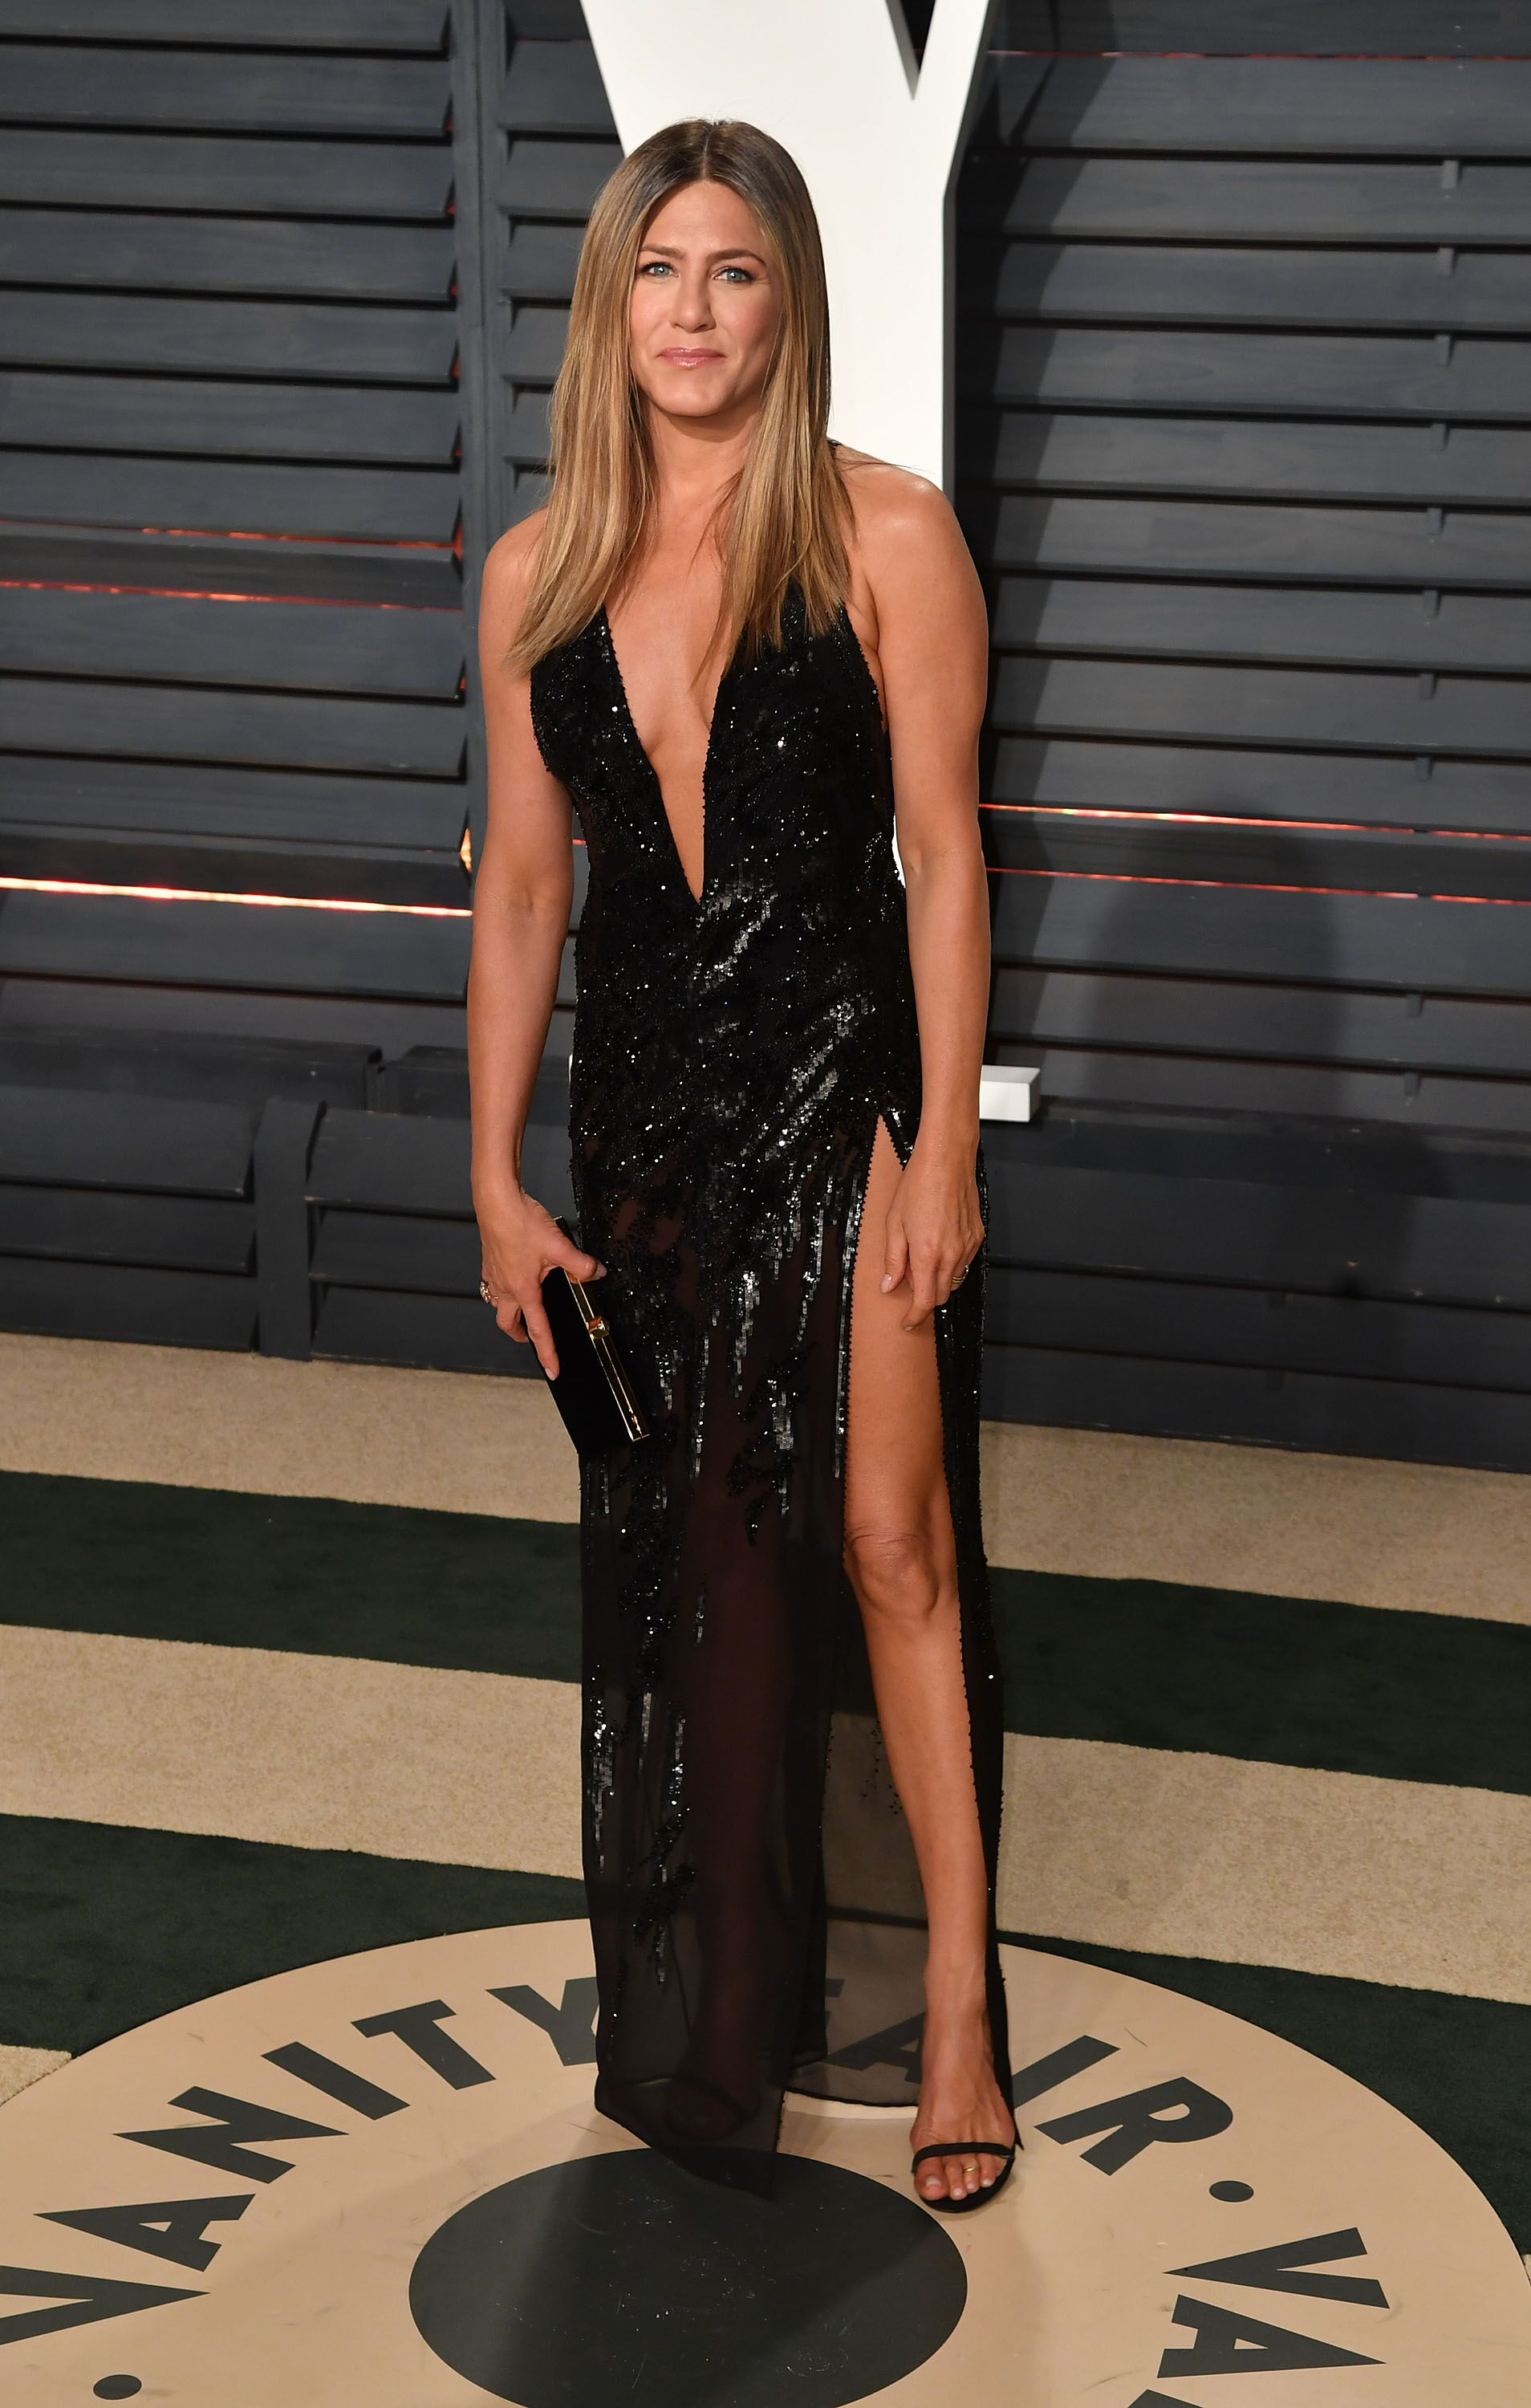 Actress Jennifer Aniston attends the 2017 Vanity Fair Oscar Party hosted by Graydon Carter at Wallis Annenberg Center for the Performing Arts on February 26, 2017 in Beverly Hills, California | Source: Getty Images